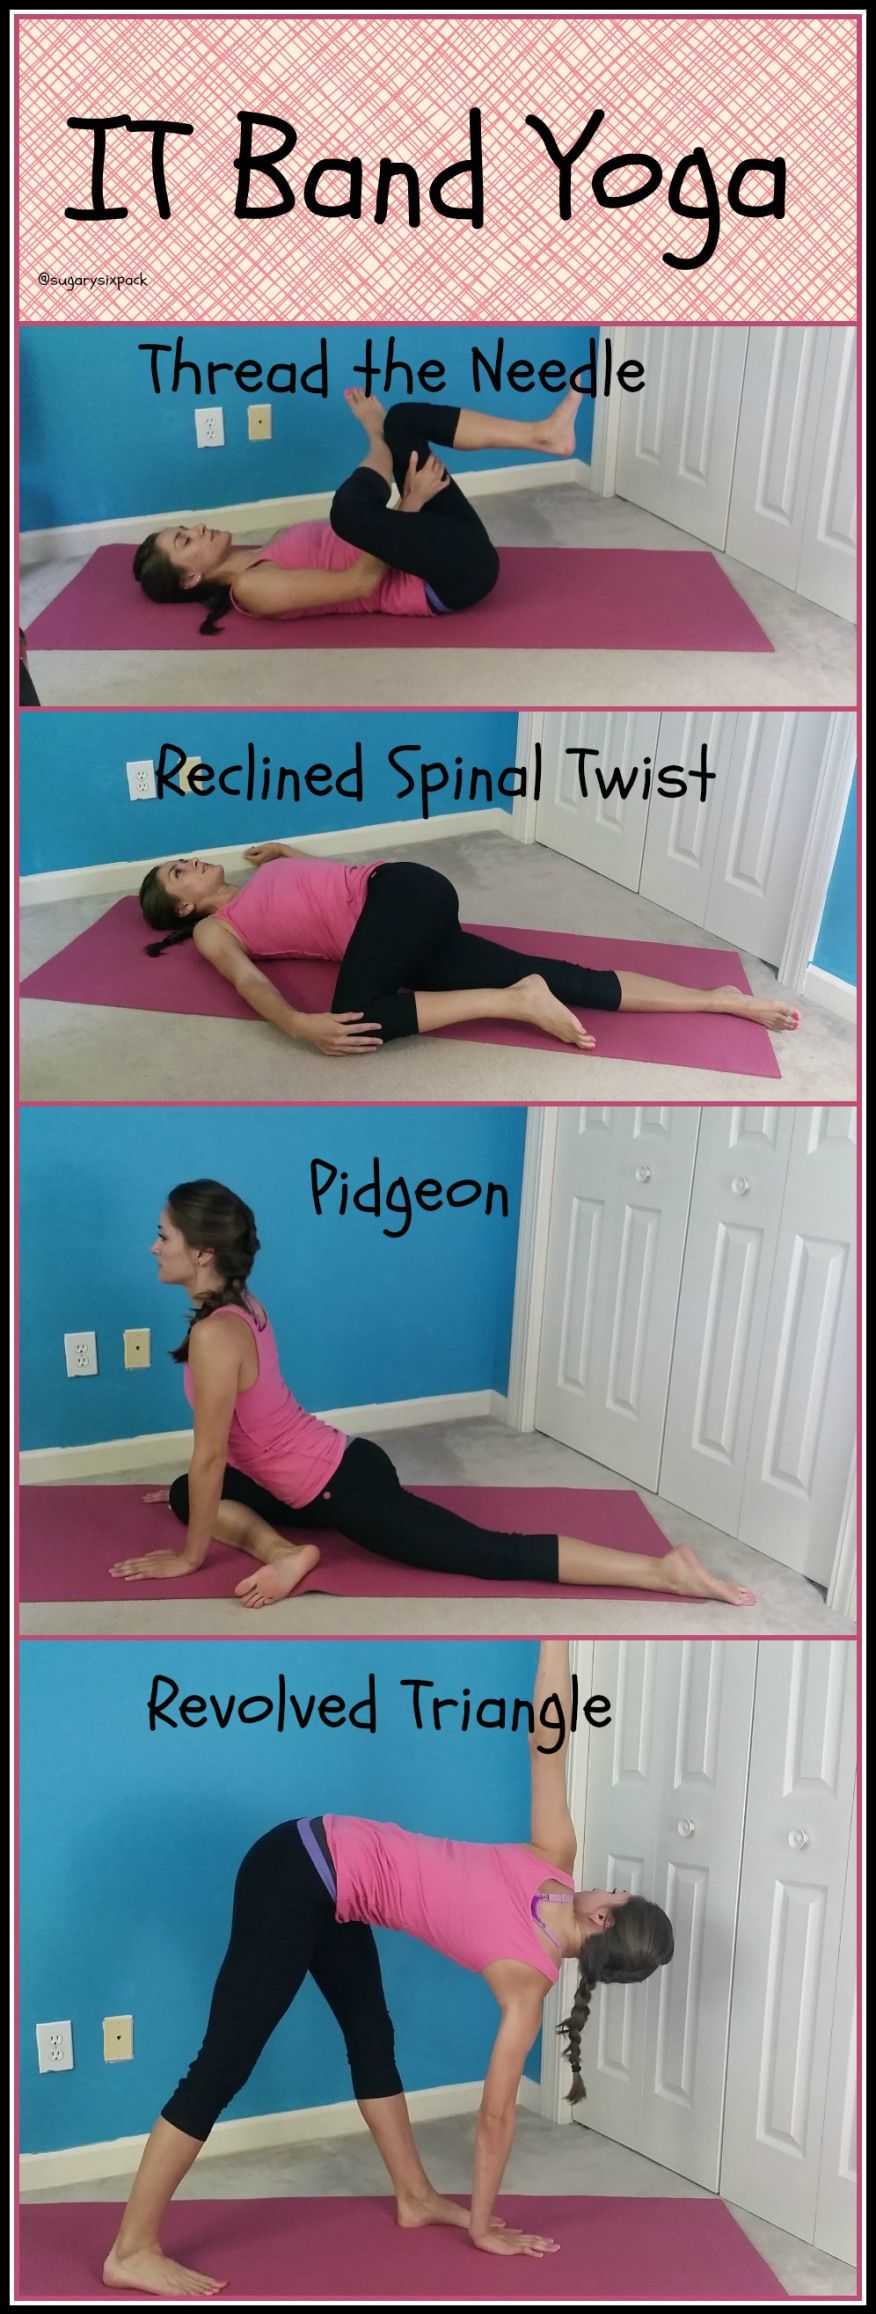 IT Band Yoga Stretch it Out  Stretch for knees sake  Pinterest